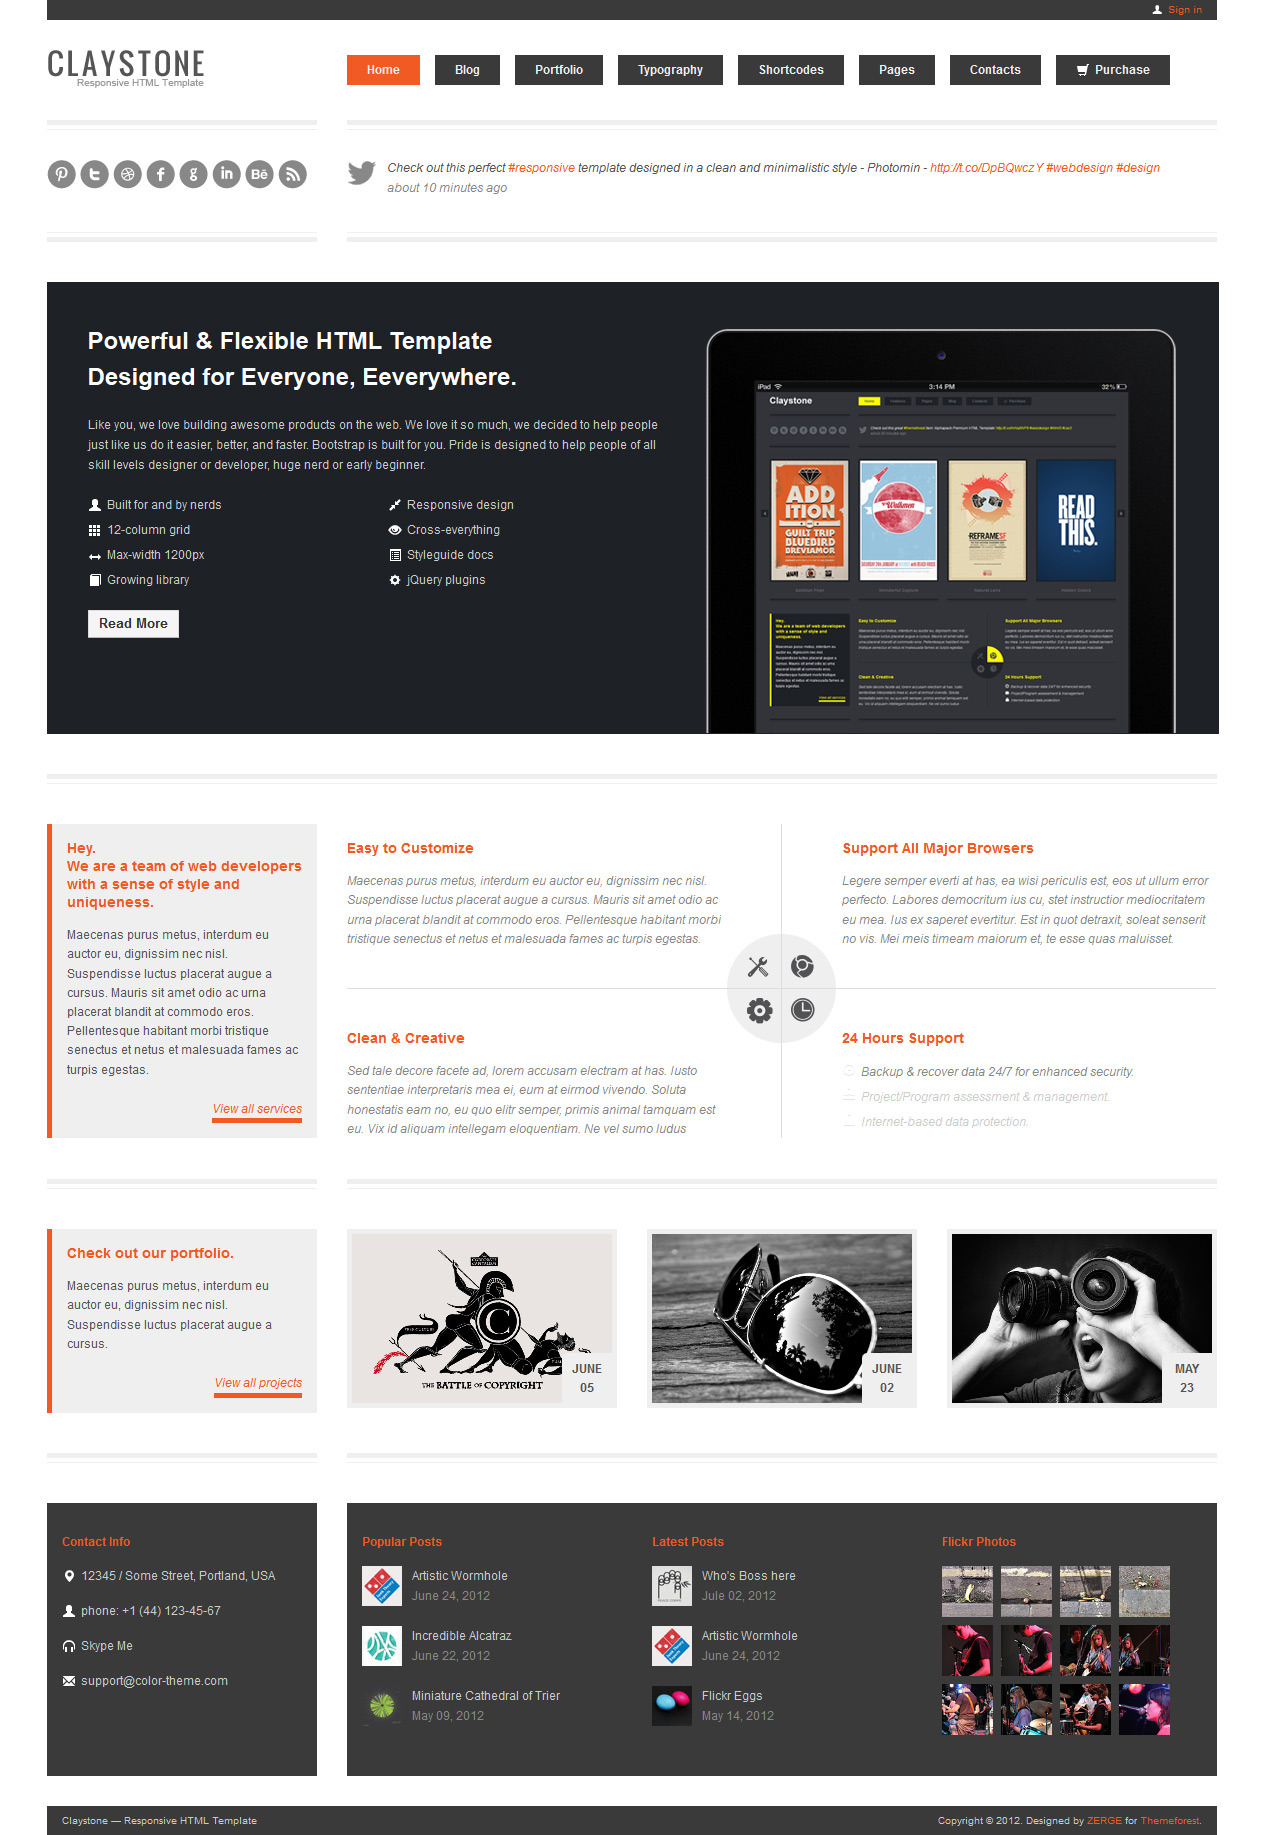 Claystone - Responsive HTML Template - 13 Home Flex Light